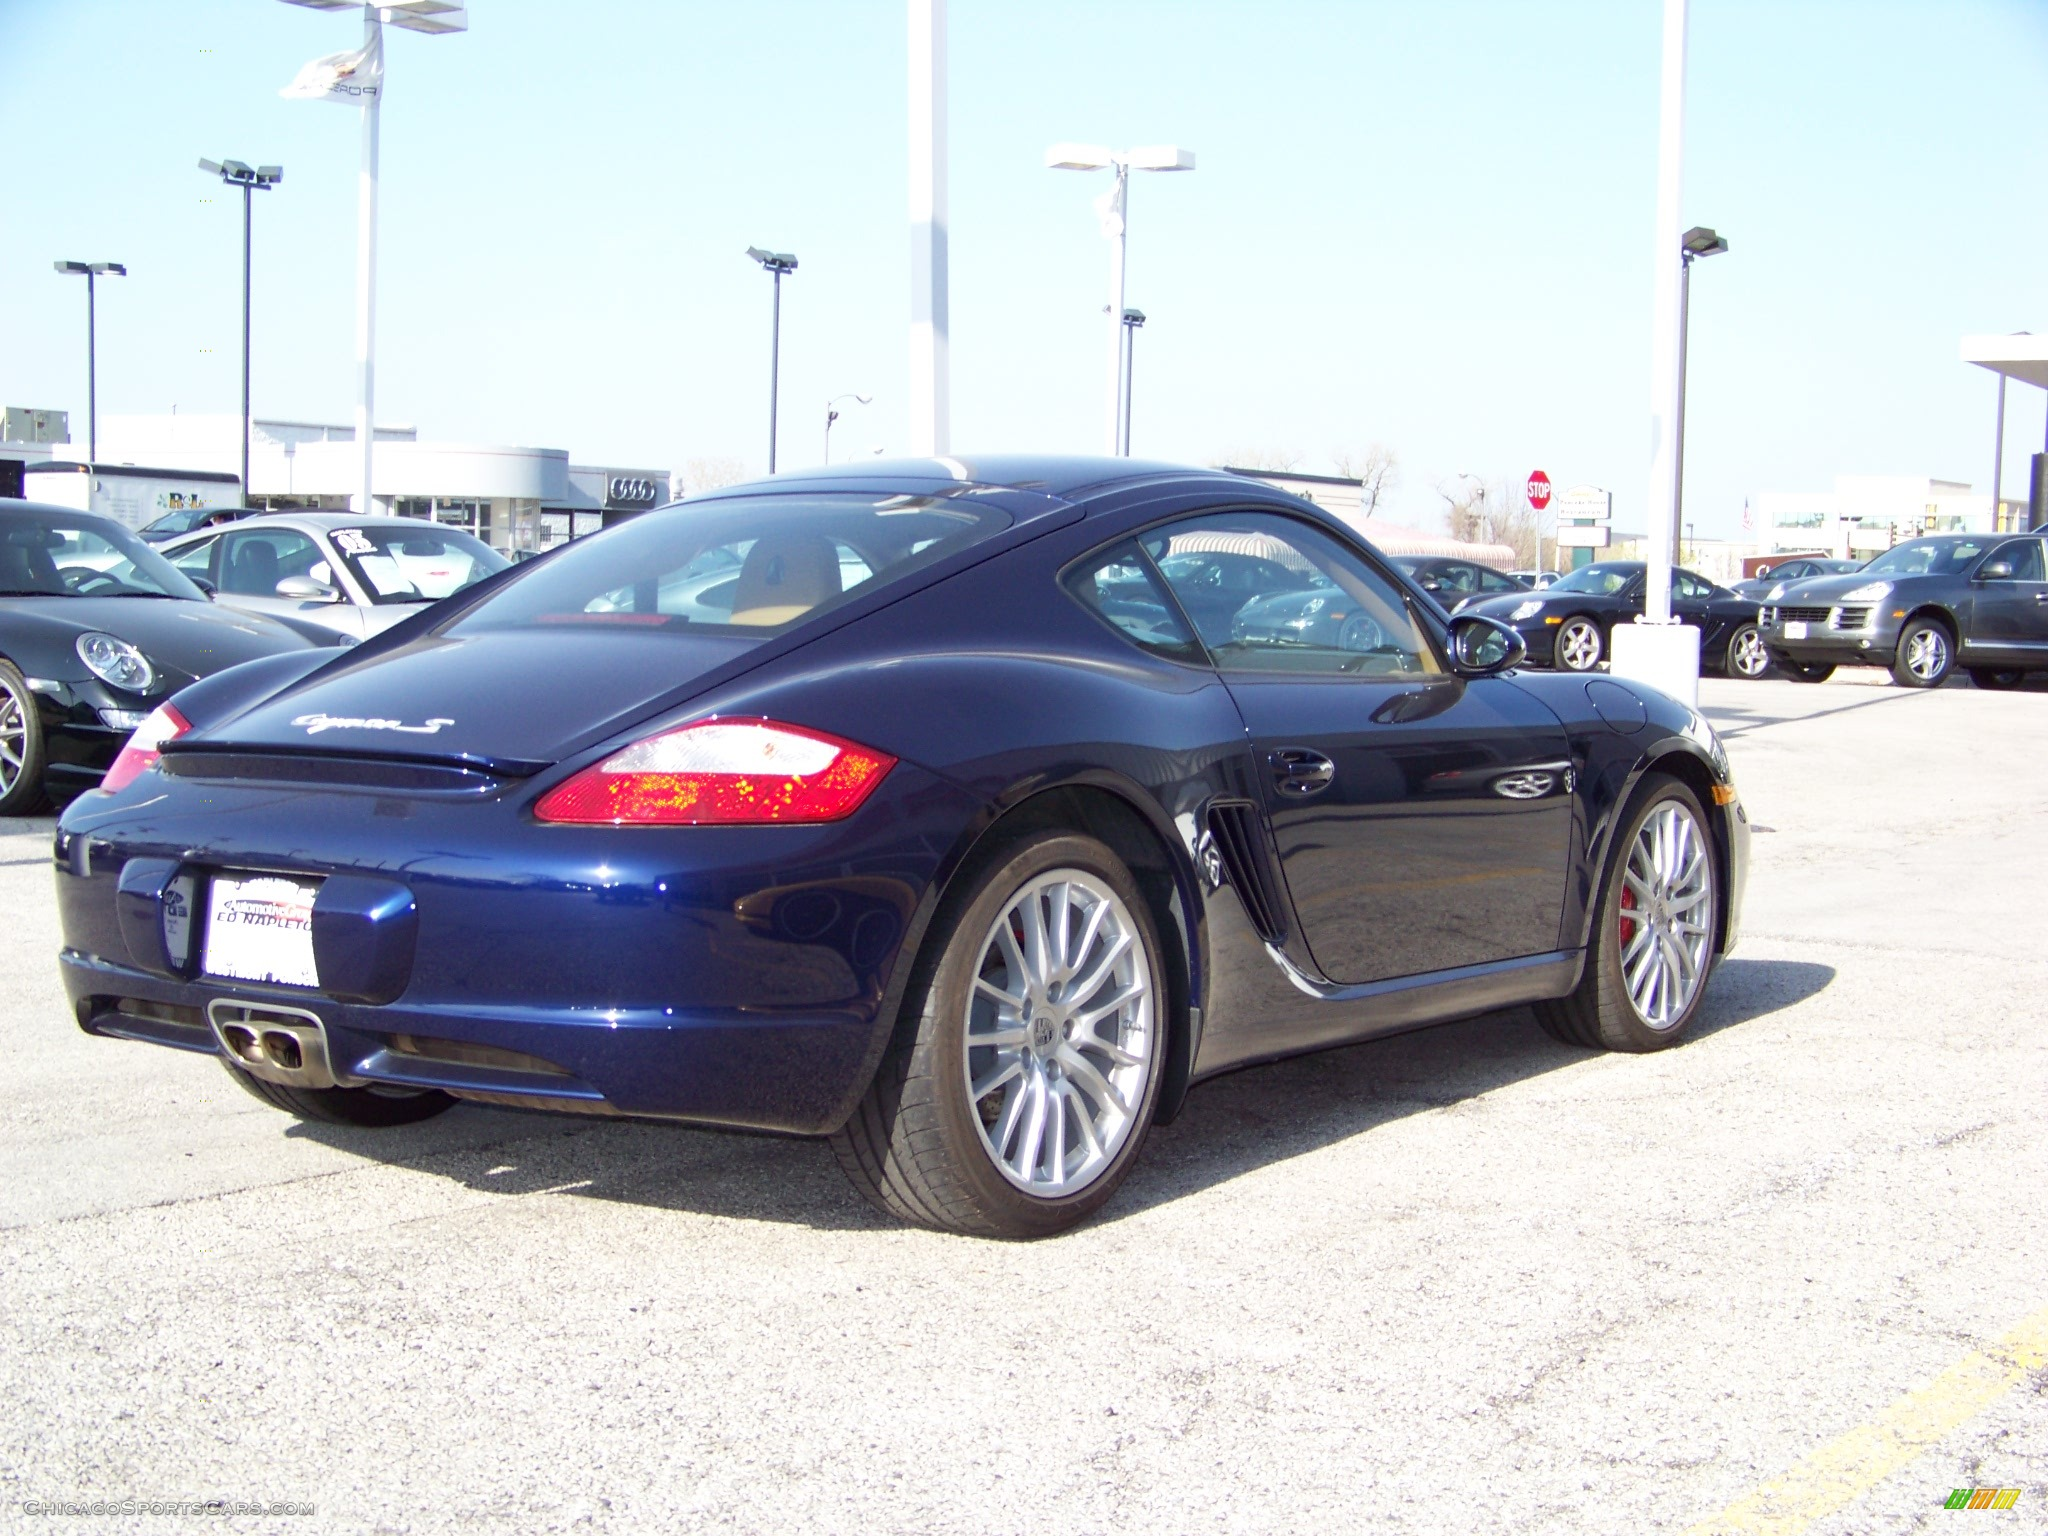 2006 Porsche Cayman S In Lapis Blue Metallic Photo 3